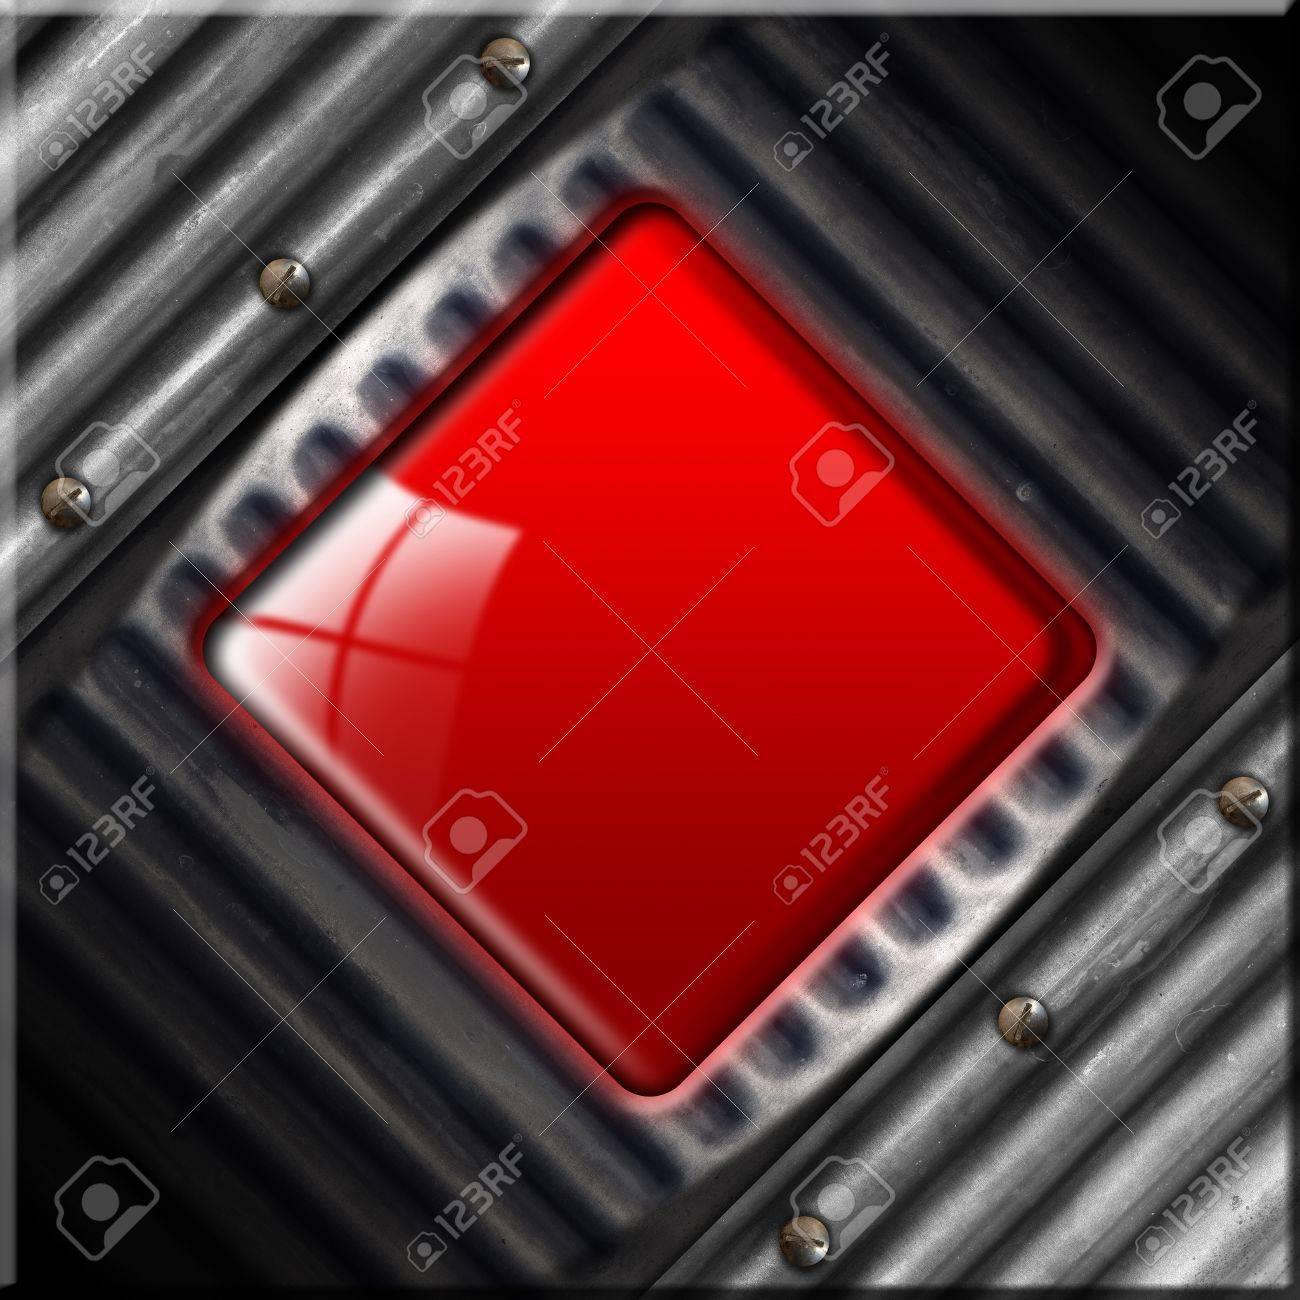 Grunge metallic abstract background with red plate Stock Photo - 16917168